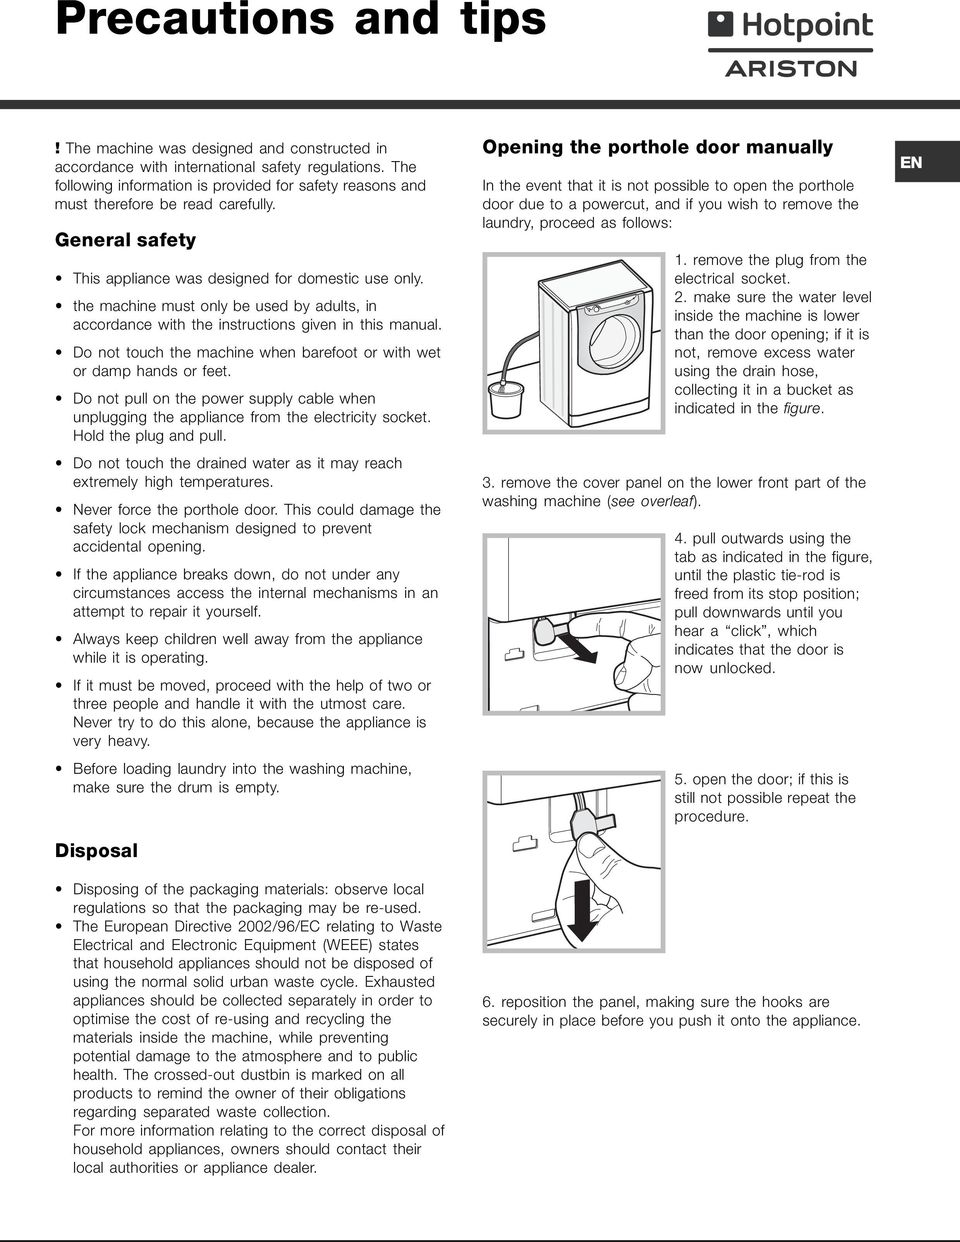 the machine must only be used by adults, in accordance with the instructions given in this manual. Do not touch the machine when barefoot or with wet or damp hands or feet.